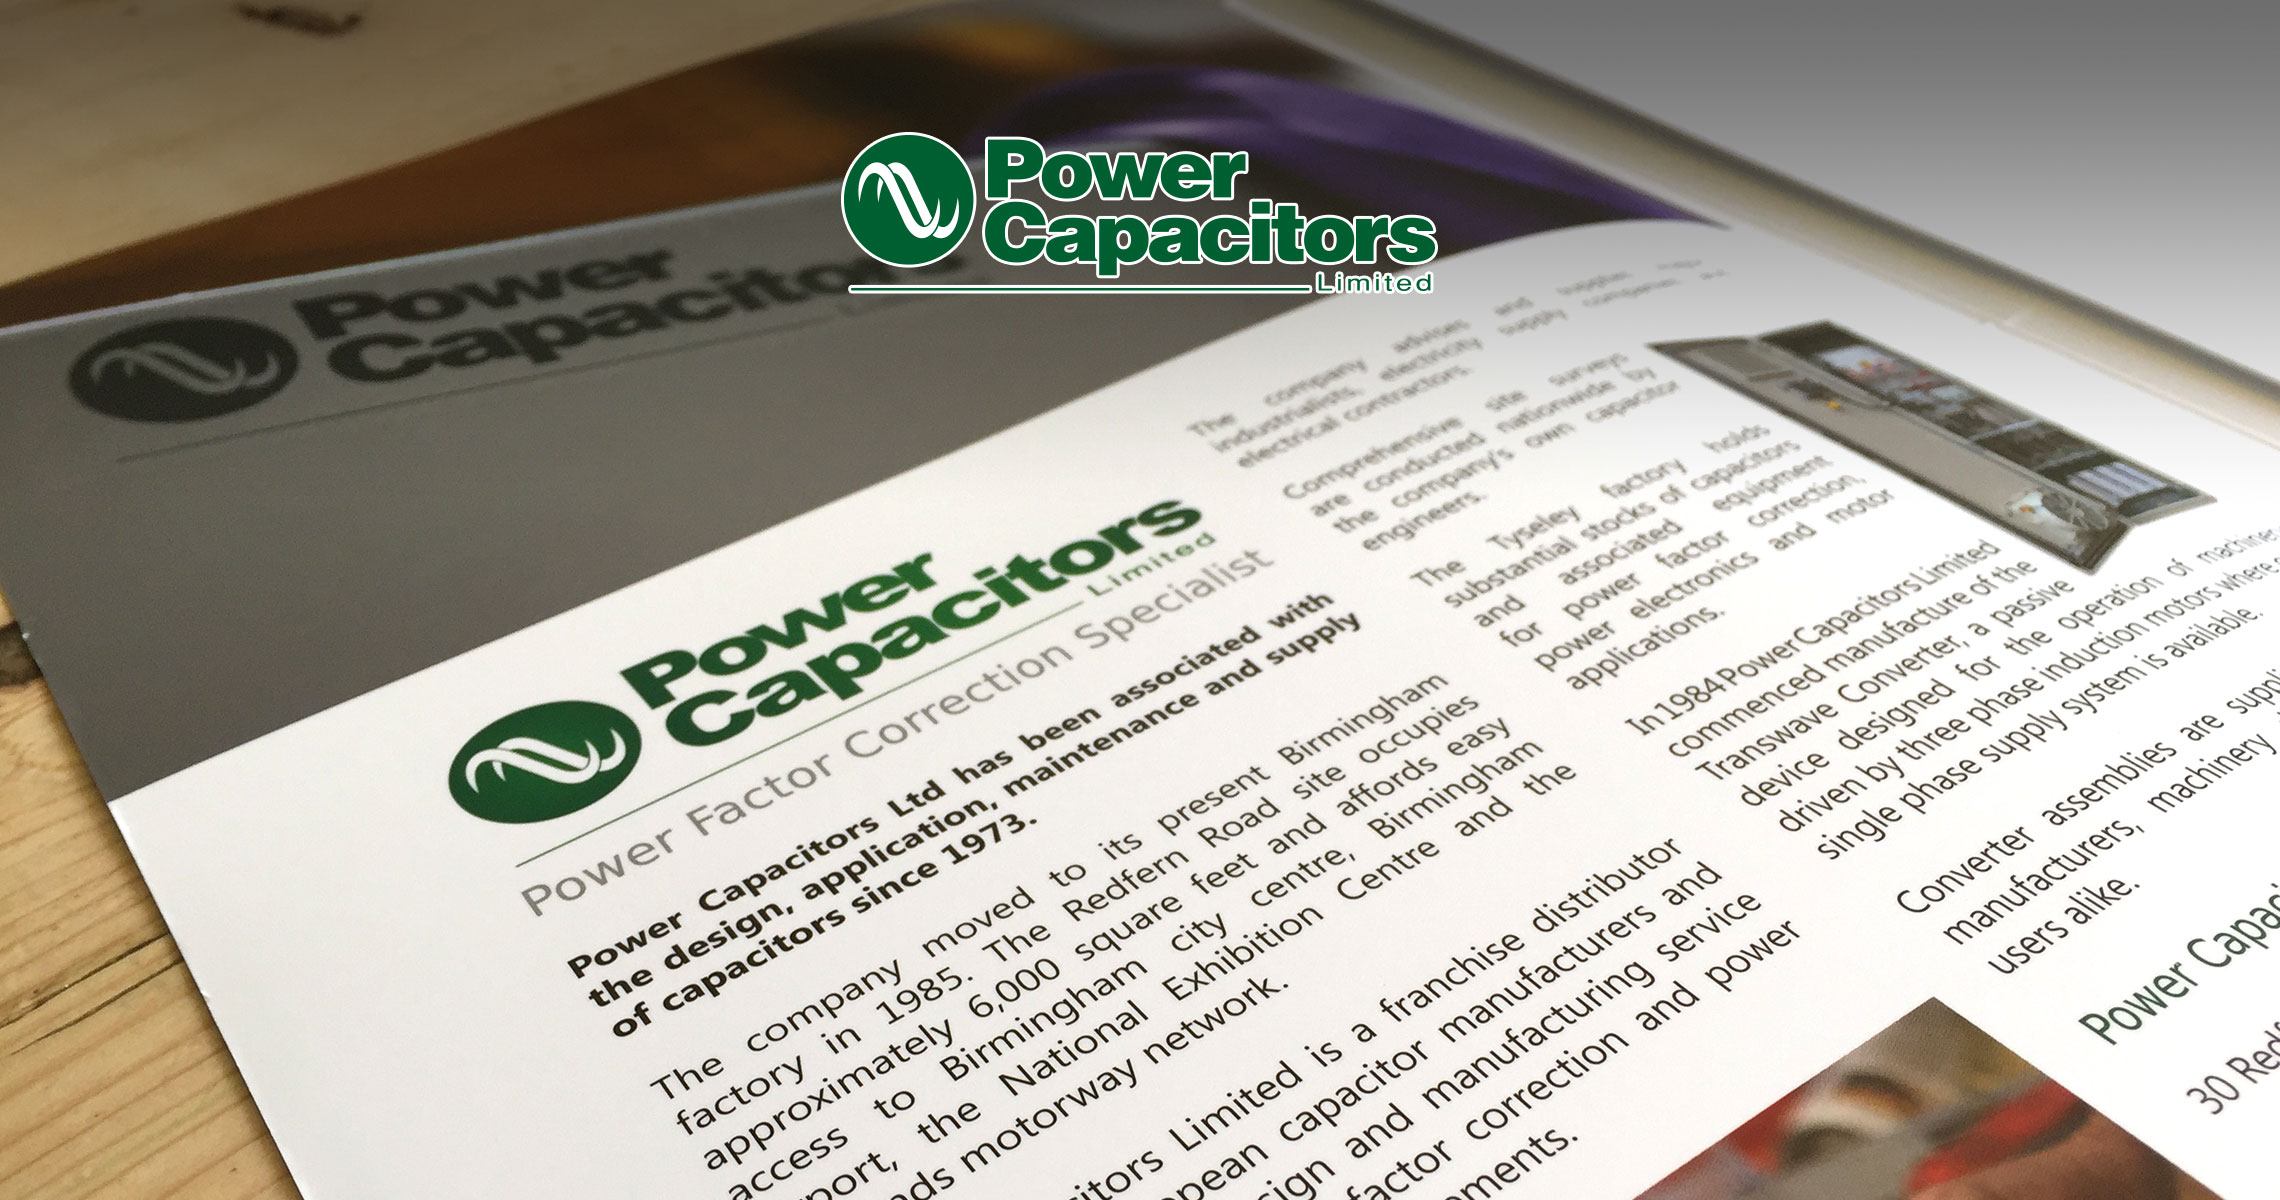 Power Capacitors Presentation Folder